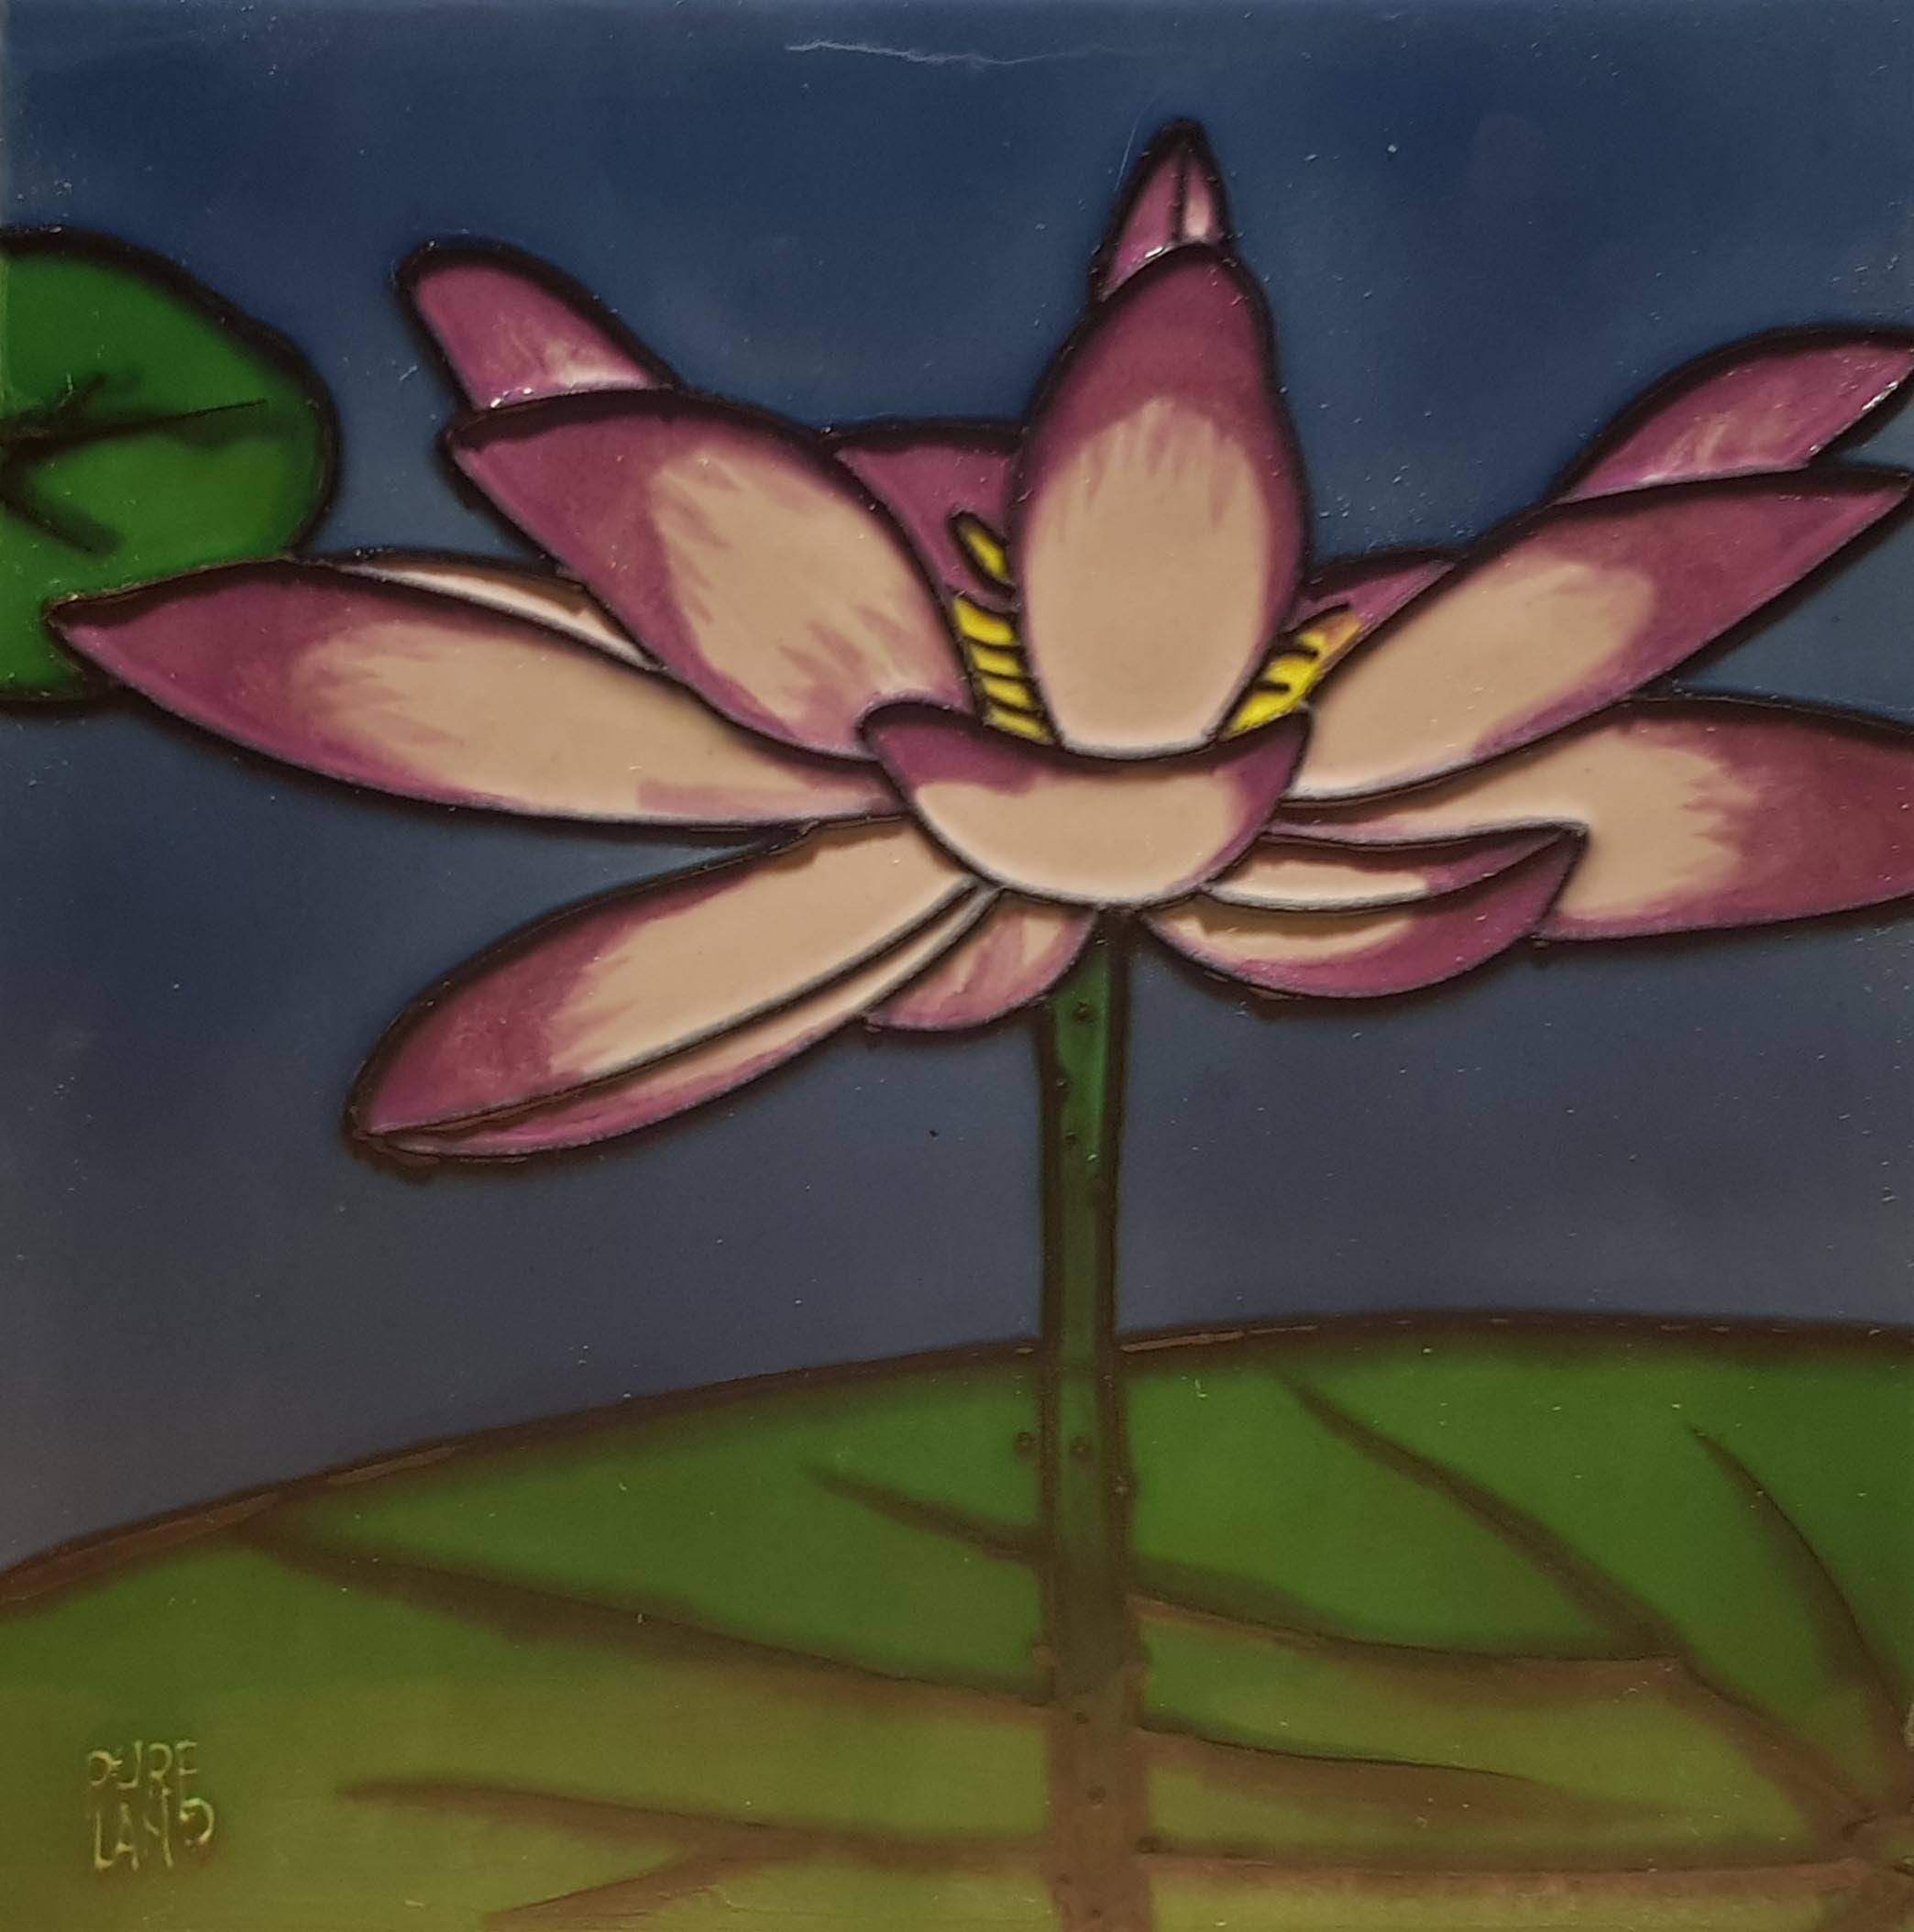 2294 Lotus Flower 20cm x 20cm Ceramic Tile